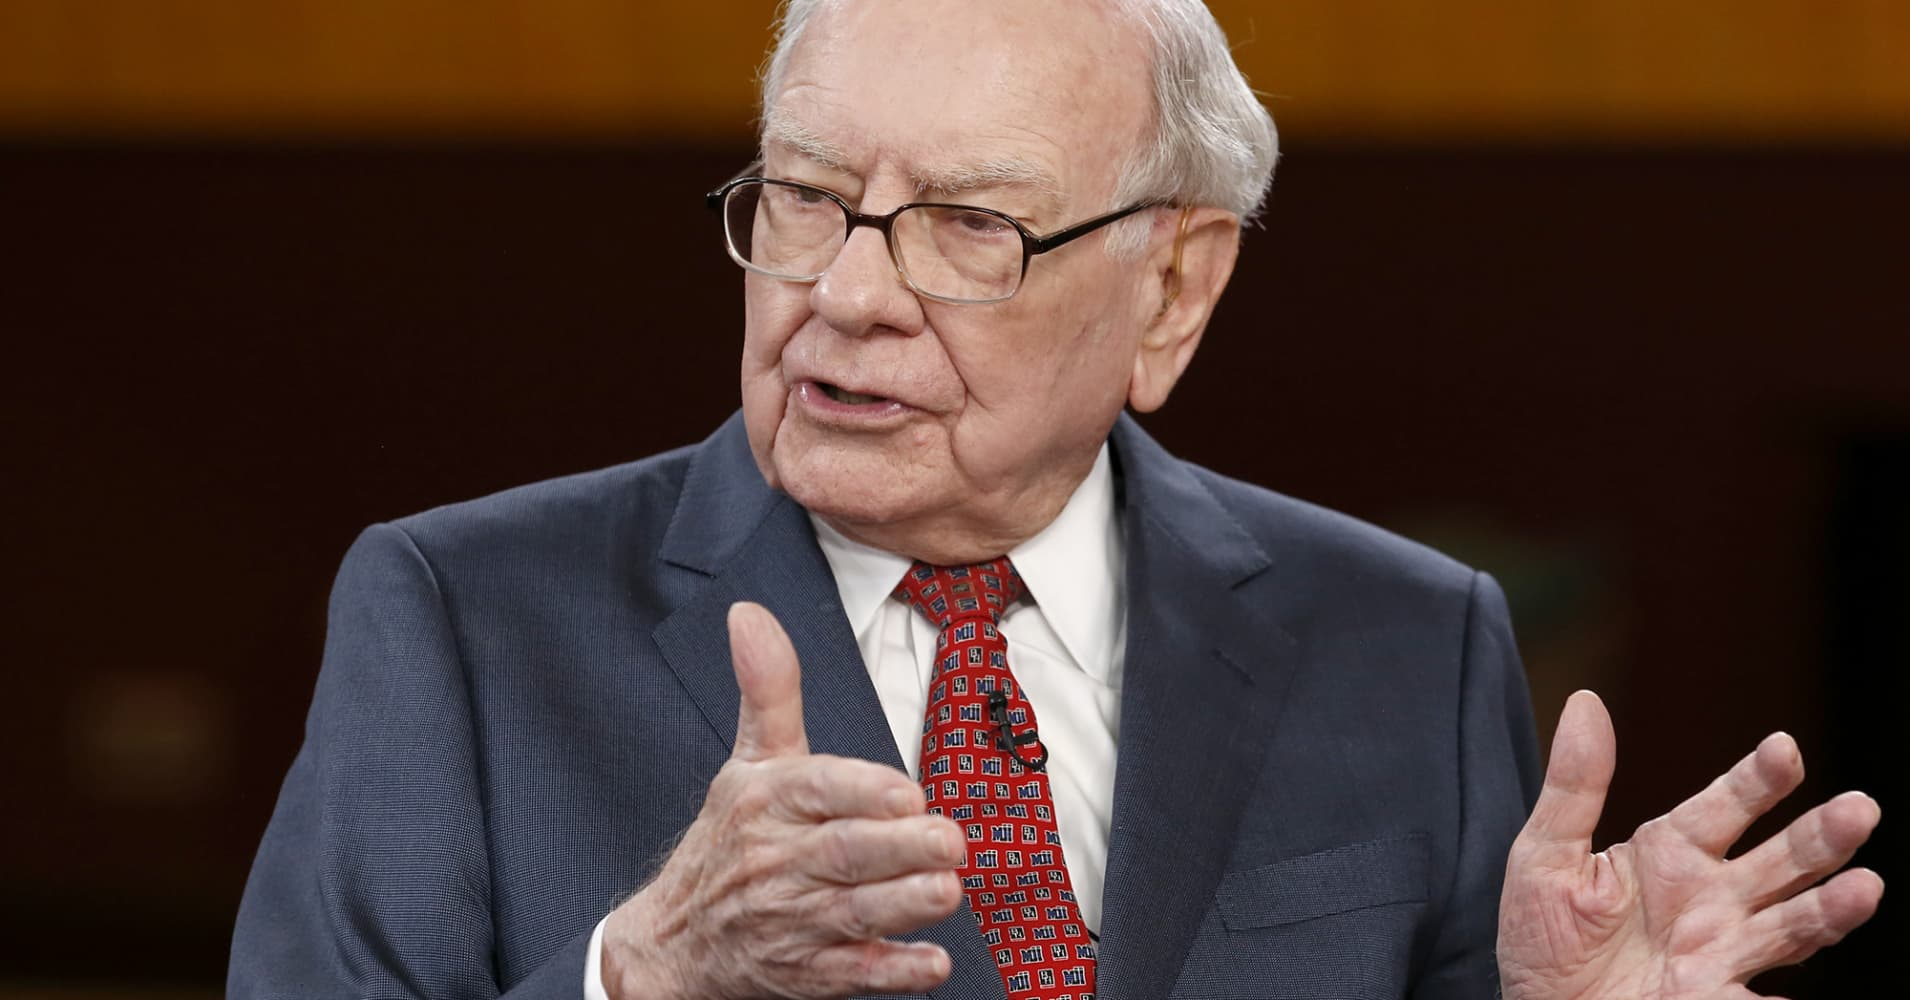 Warren Buffett on trade war: 'The world will not do something stupid'